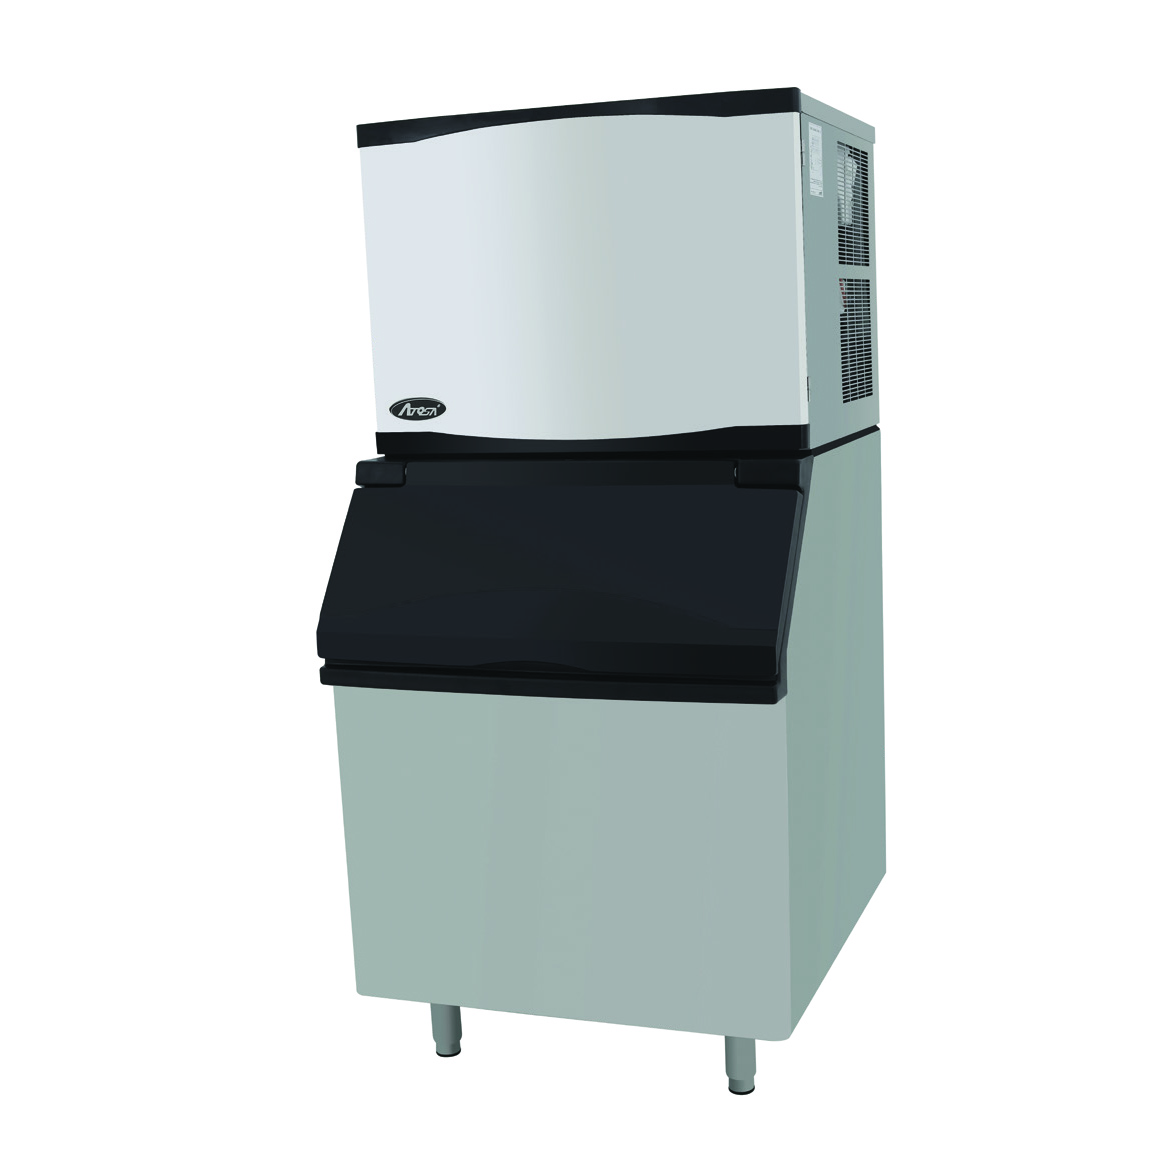 Atosa USA YR800-AP-261 ice maker, cube-style